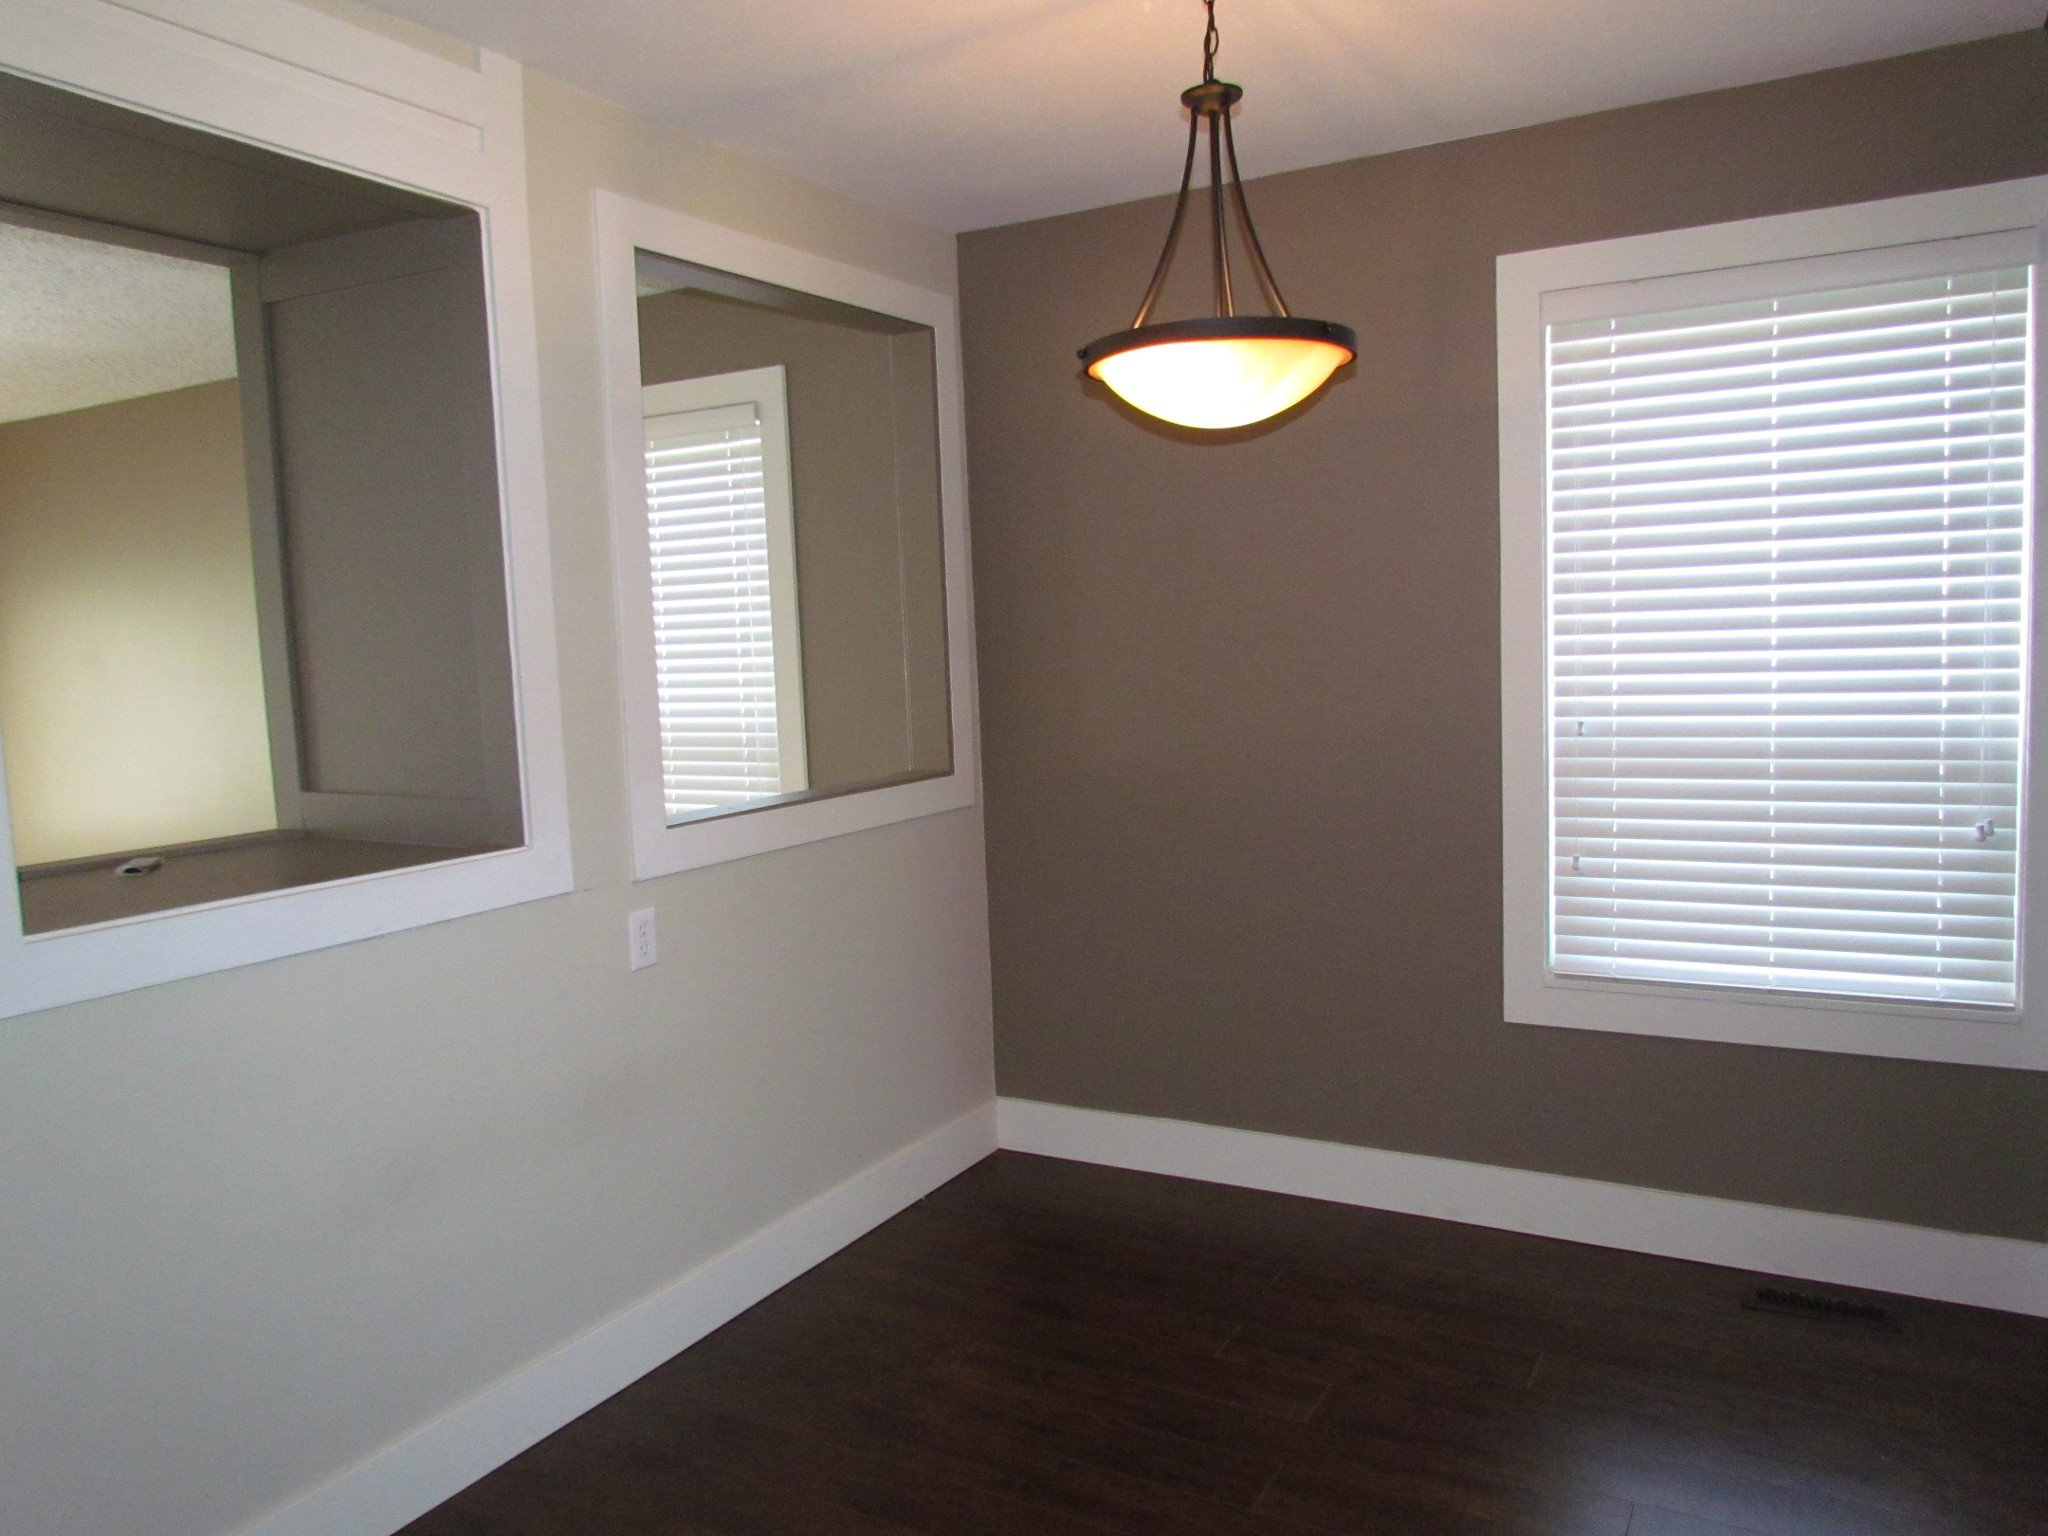 Photo 5: Photos: 3465 Juniper Cr. in Abbotsford: Abbotsford East House for rent